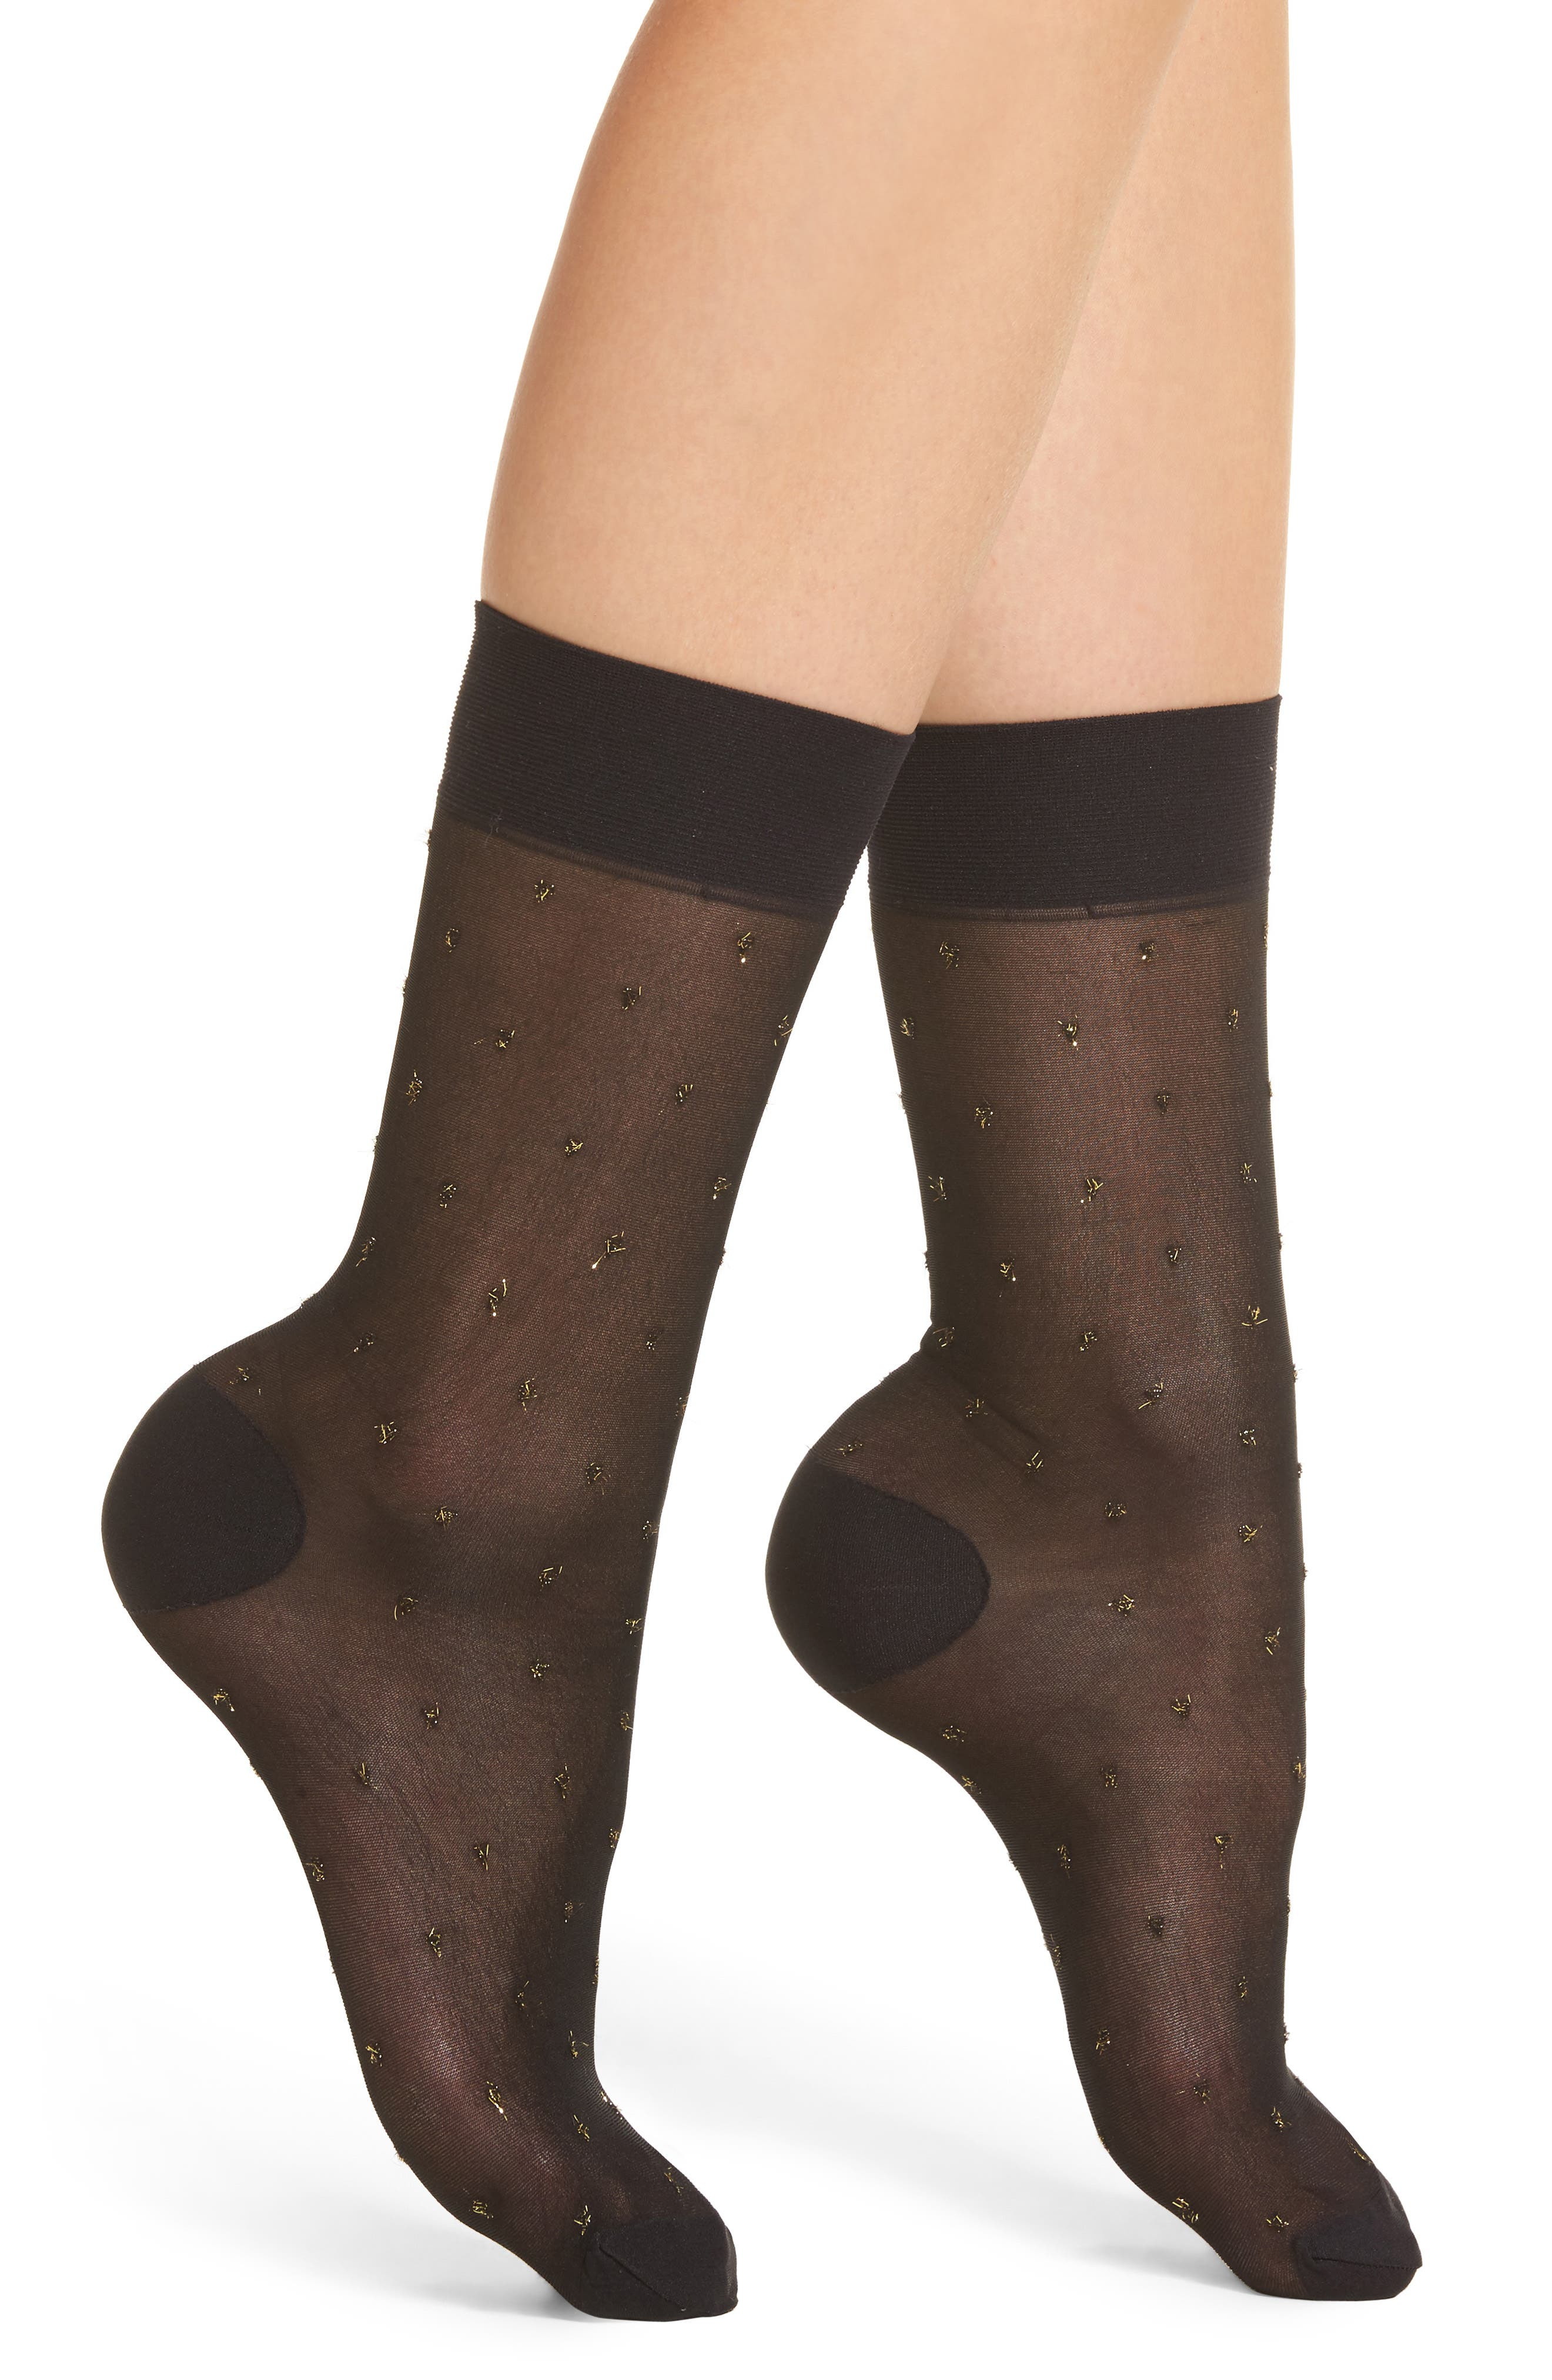 Gold Dot Sheer Socks,                         Main,                         color, Black